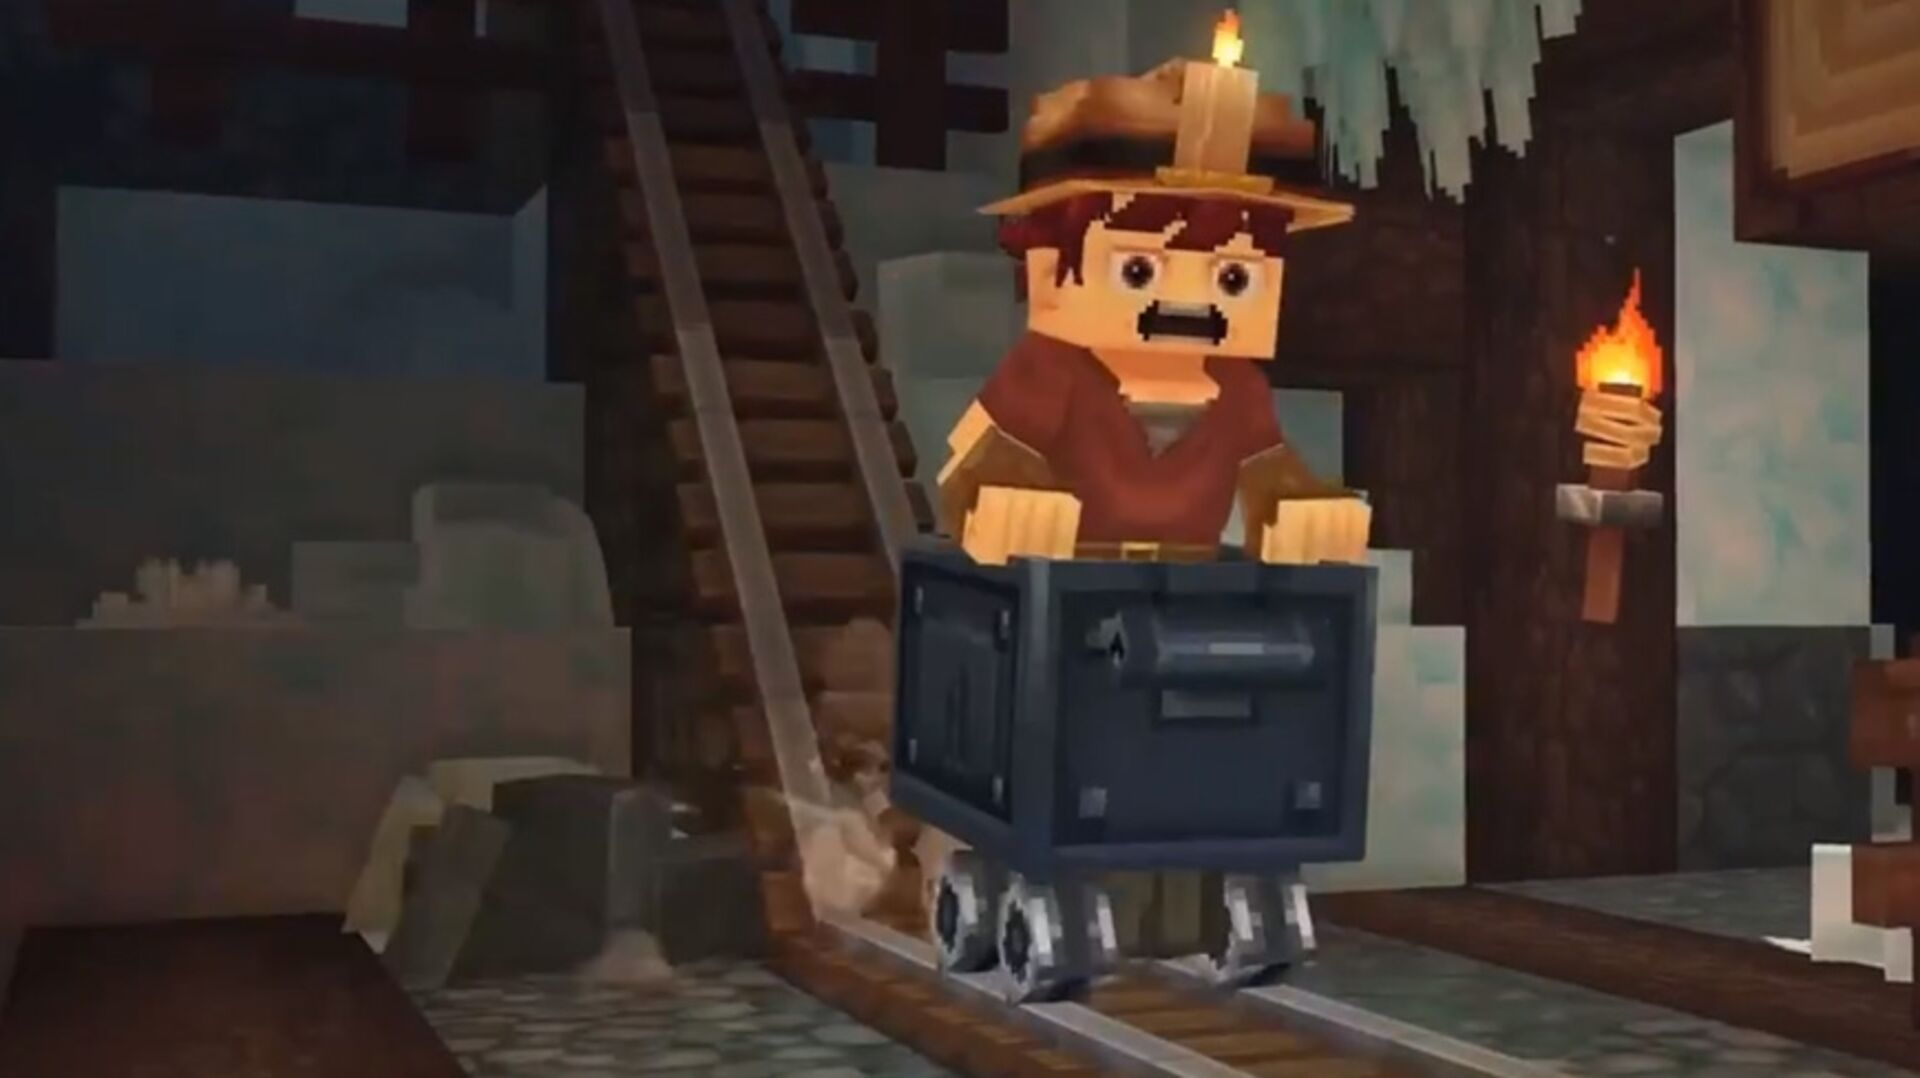 Hytale is a brand new game from giants of the Minecraft